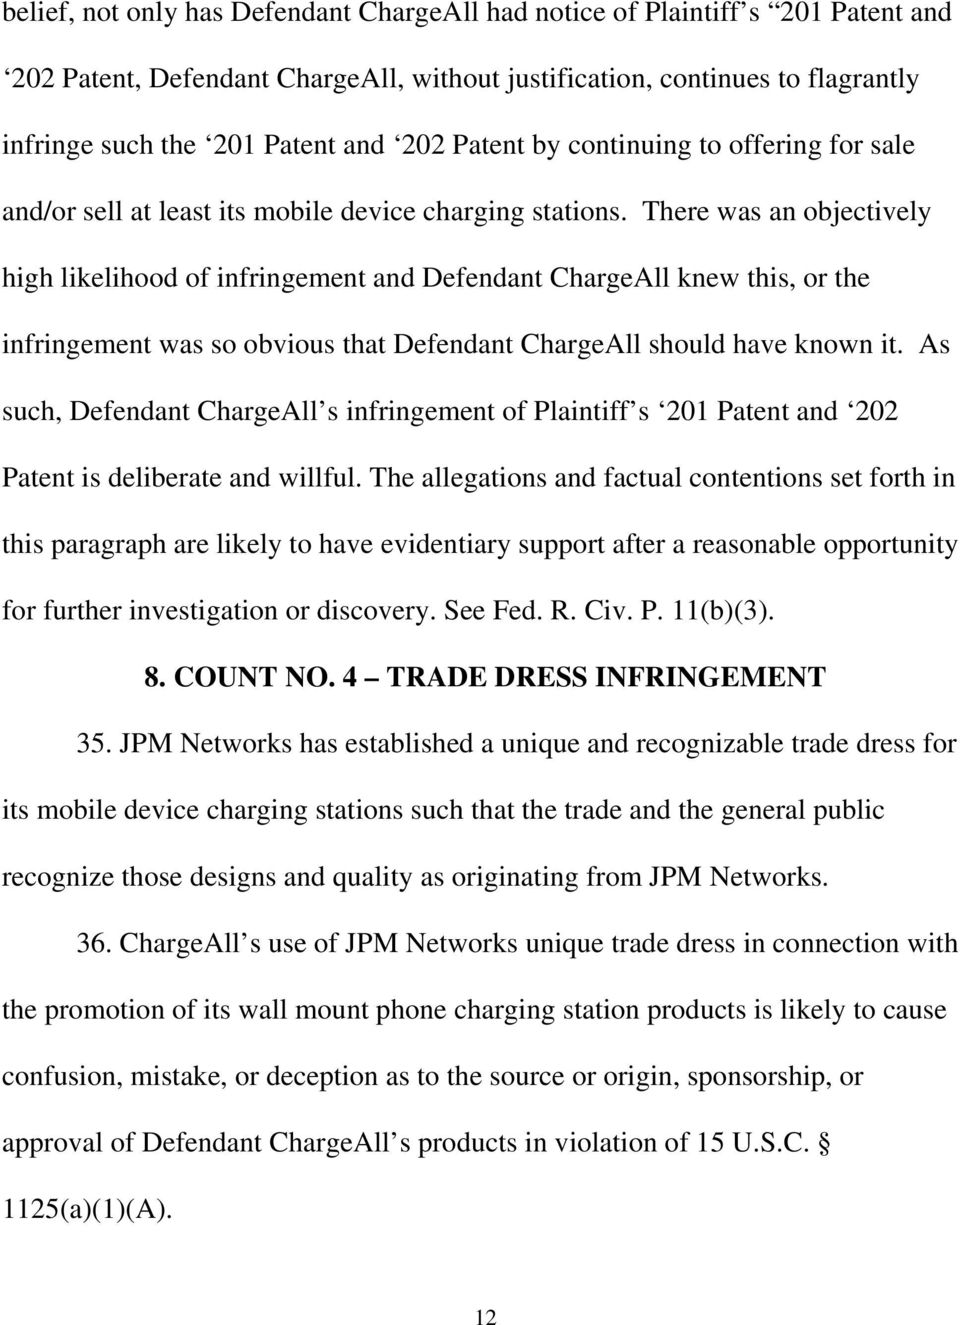 There was an objectively high likelihood of infringement and Defendant ChargeAll knew this, or the infringement was so obvious that Defendant ChargeAll should have known it.